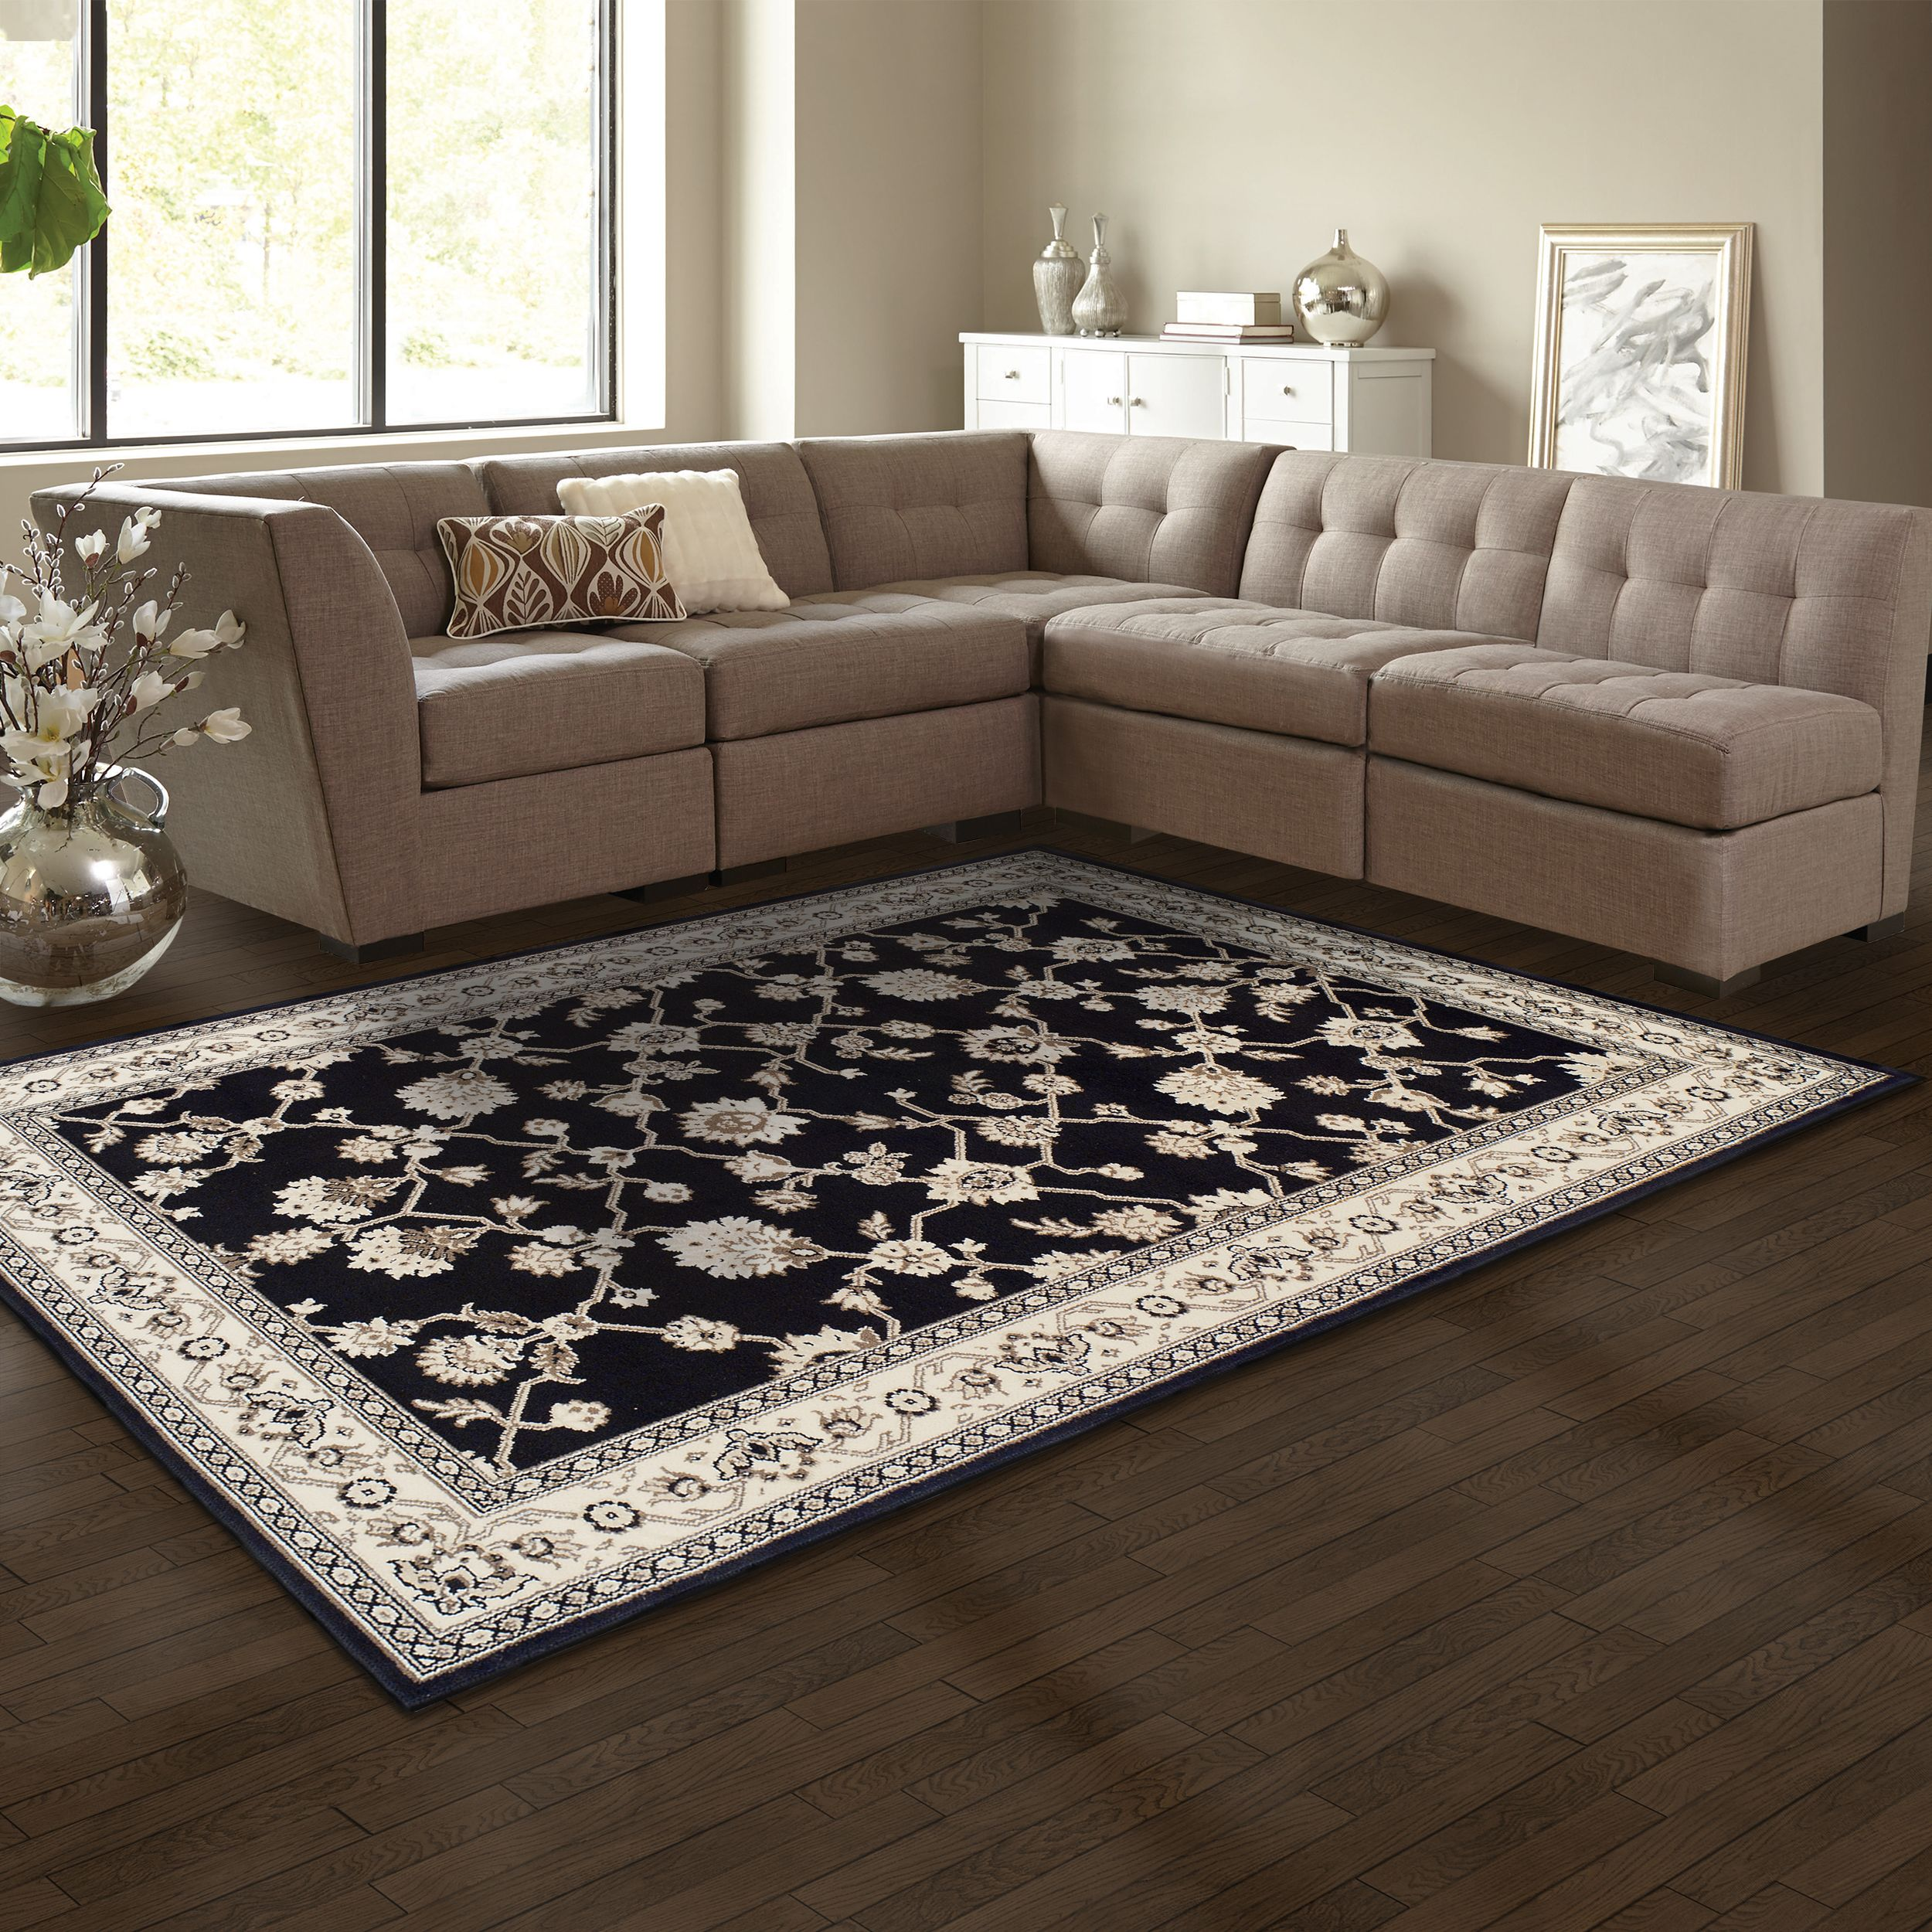 Superior Elegant Kingfield Collection with 8mm Pile and Jute Backing, Moisture Resistant and Anti-Static Indoor Area Rug